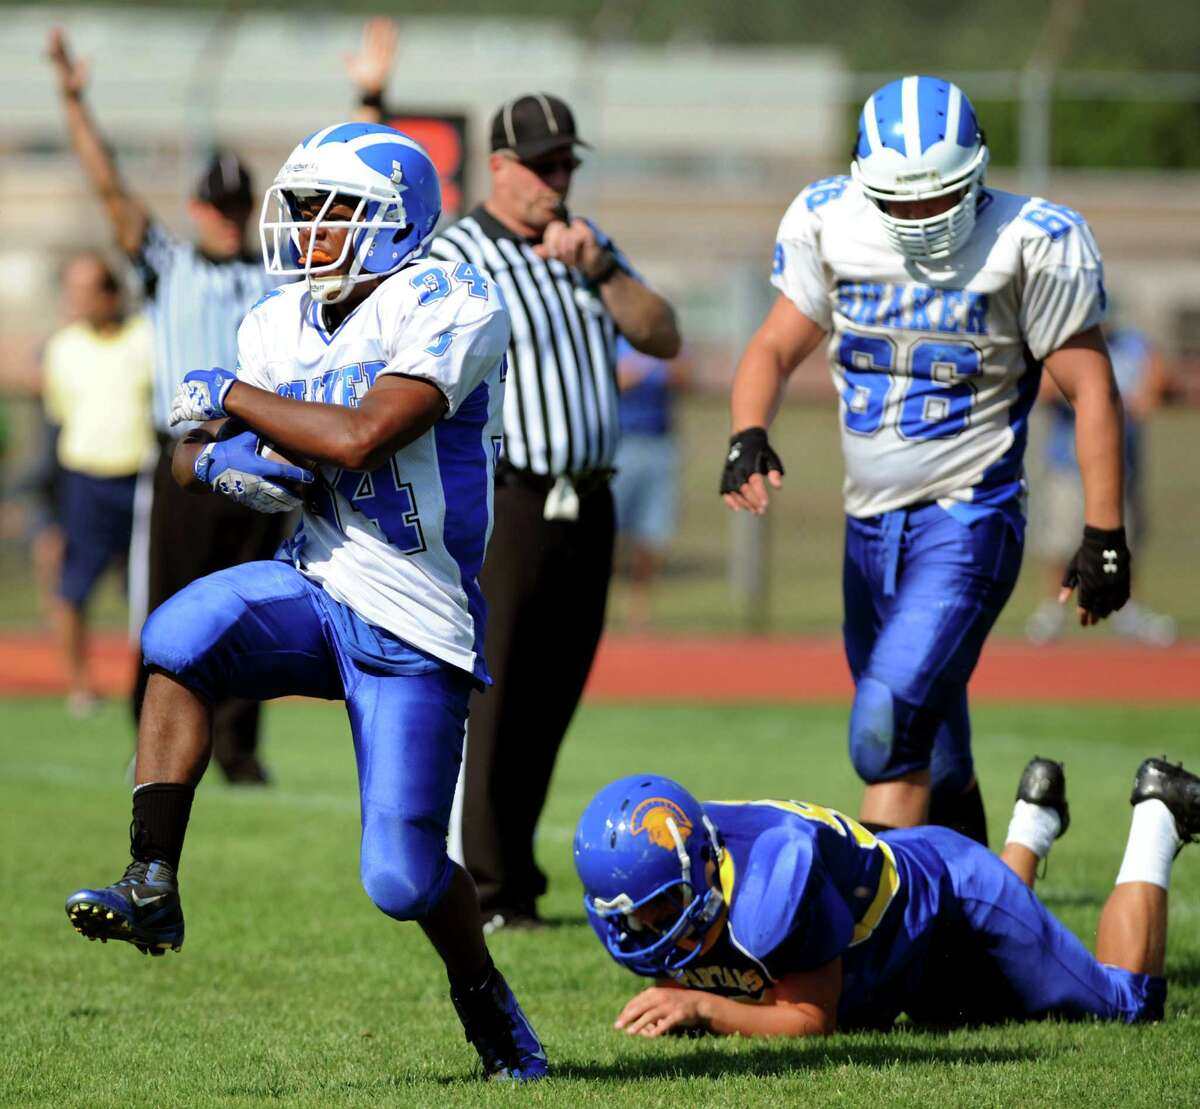 Shaker's Kenny Jackson (34), left, dodges a tackle and scores a touchdown during their football game against Queensbury on Saturday, Sept. 1, 2012, at Queensbury High in Queensbury, N.Y. (Cindy Schultz / Times Union)